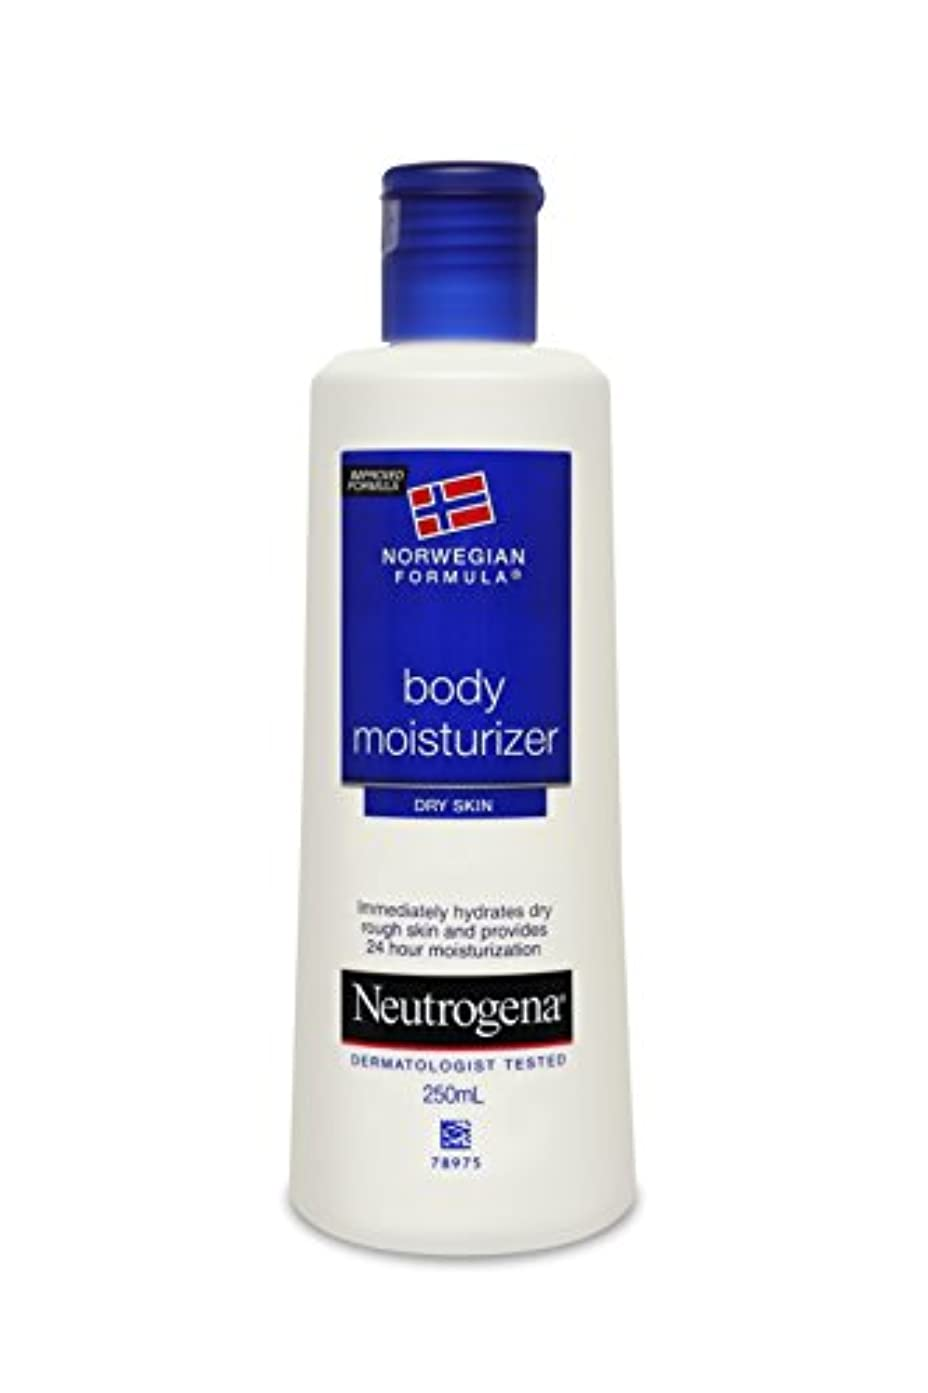 略すうがいトロイの木馬Neutrogena Norwegian Formula Body Moisturizer (for Dry Skin), 250ml